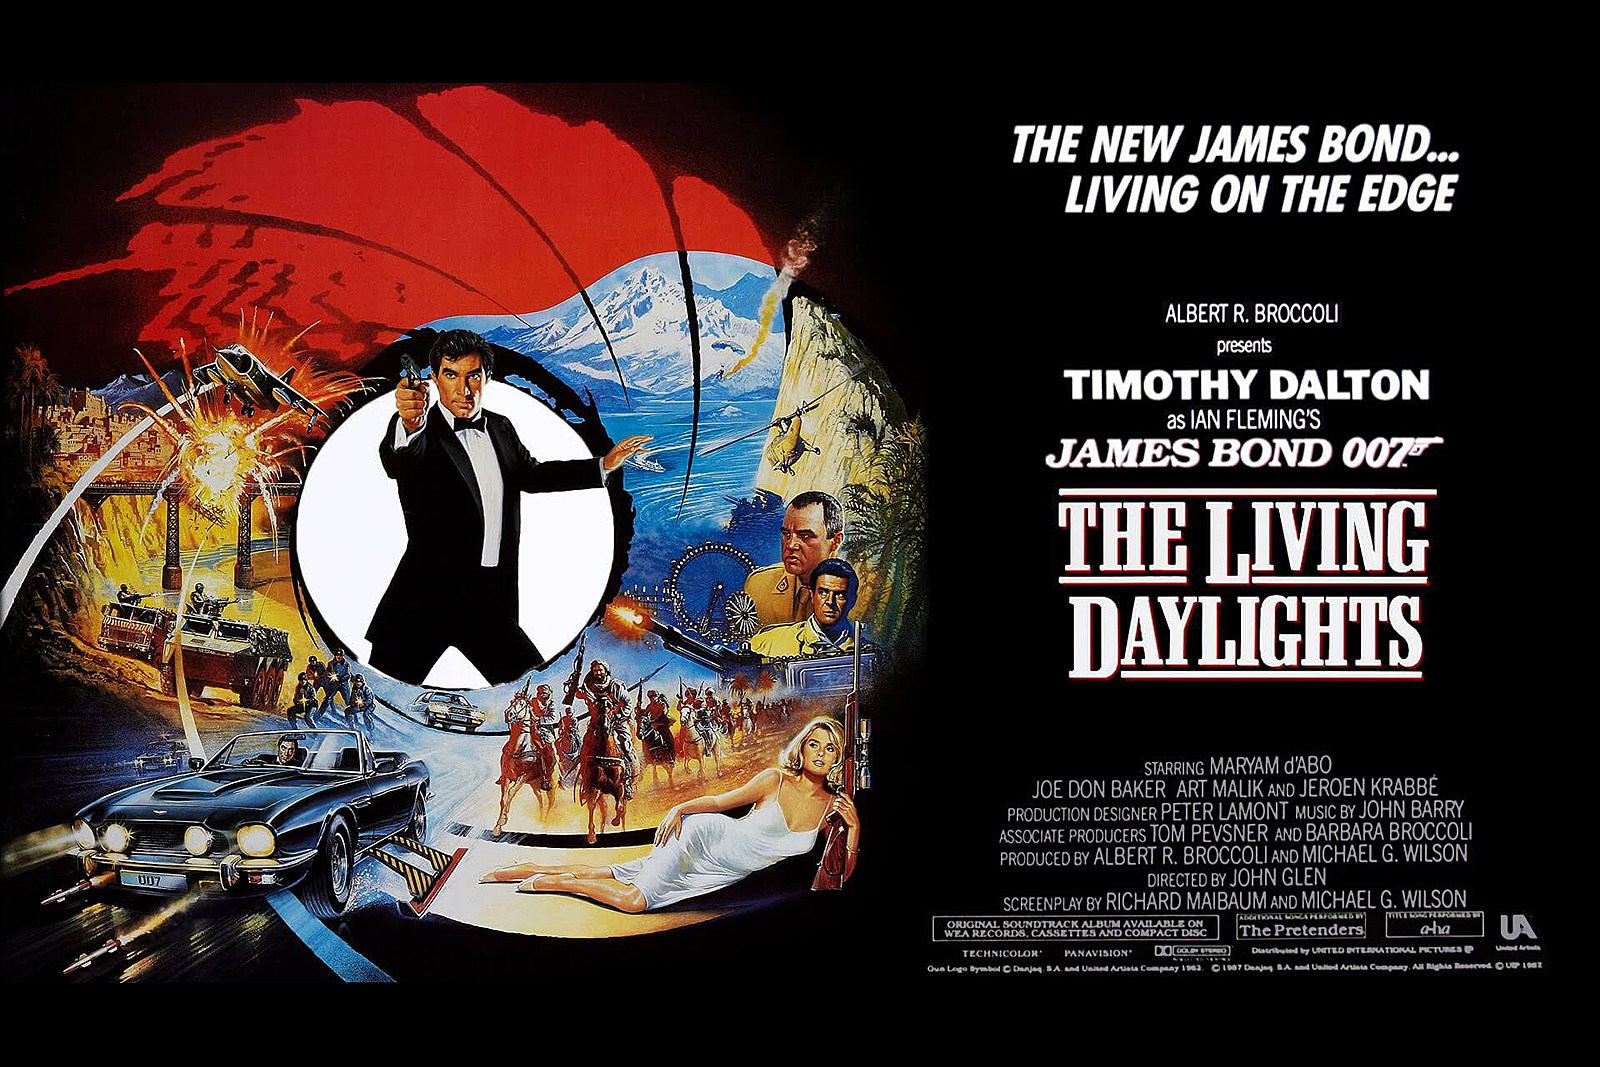 A New James Bond Plays 007 by the Book in 'The Living Daylights'